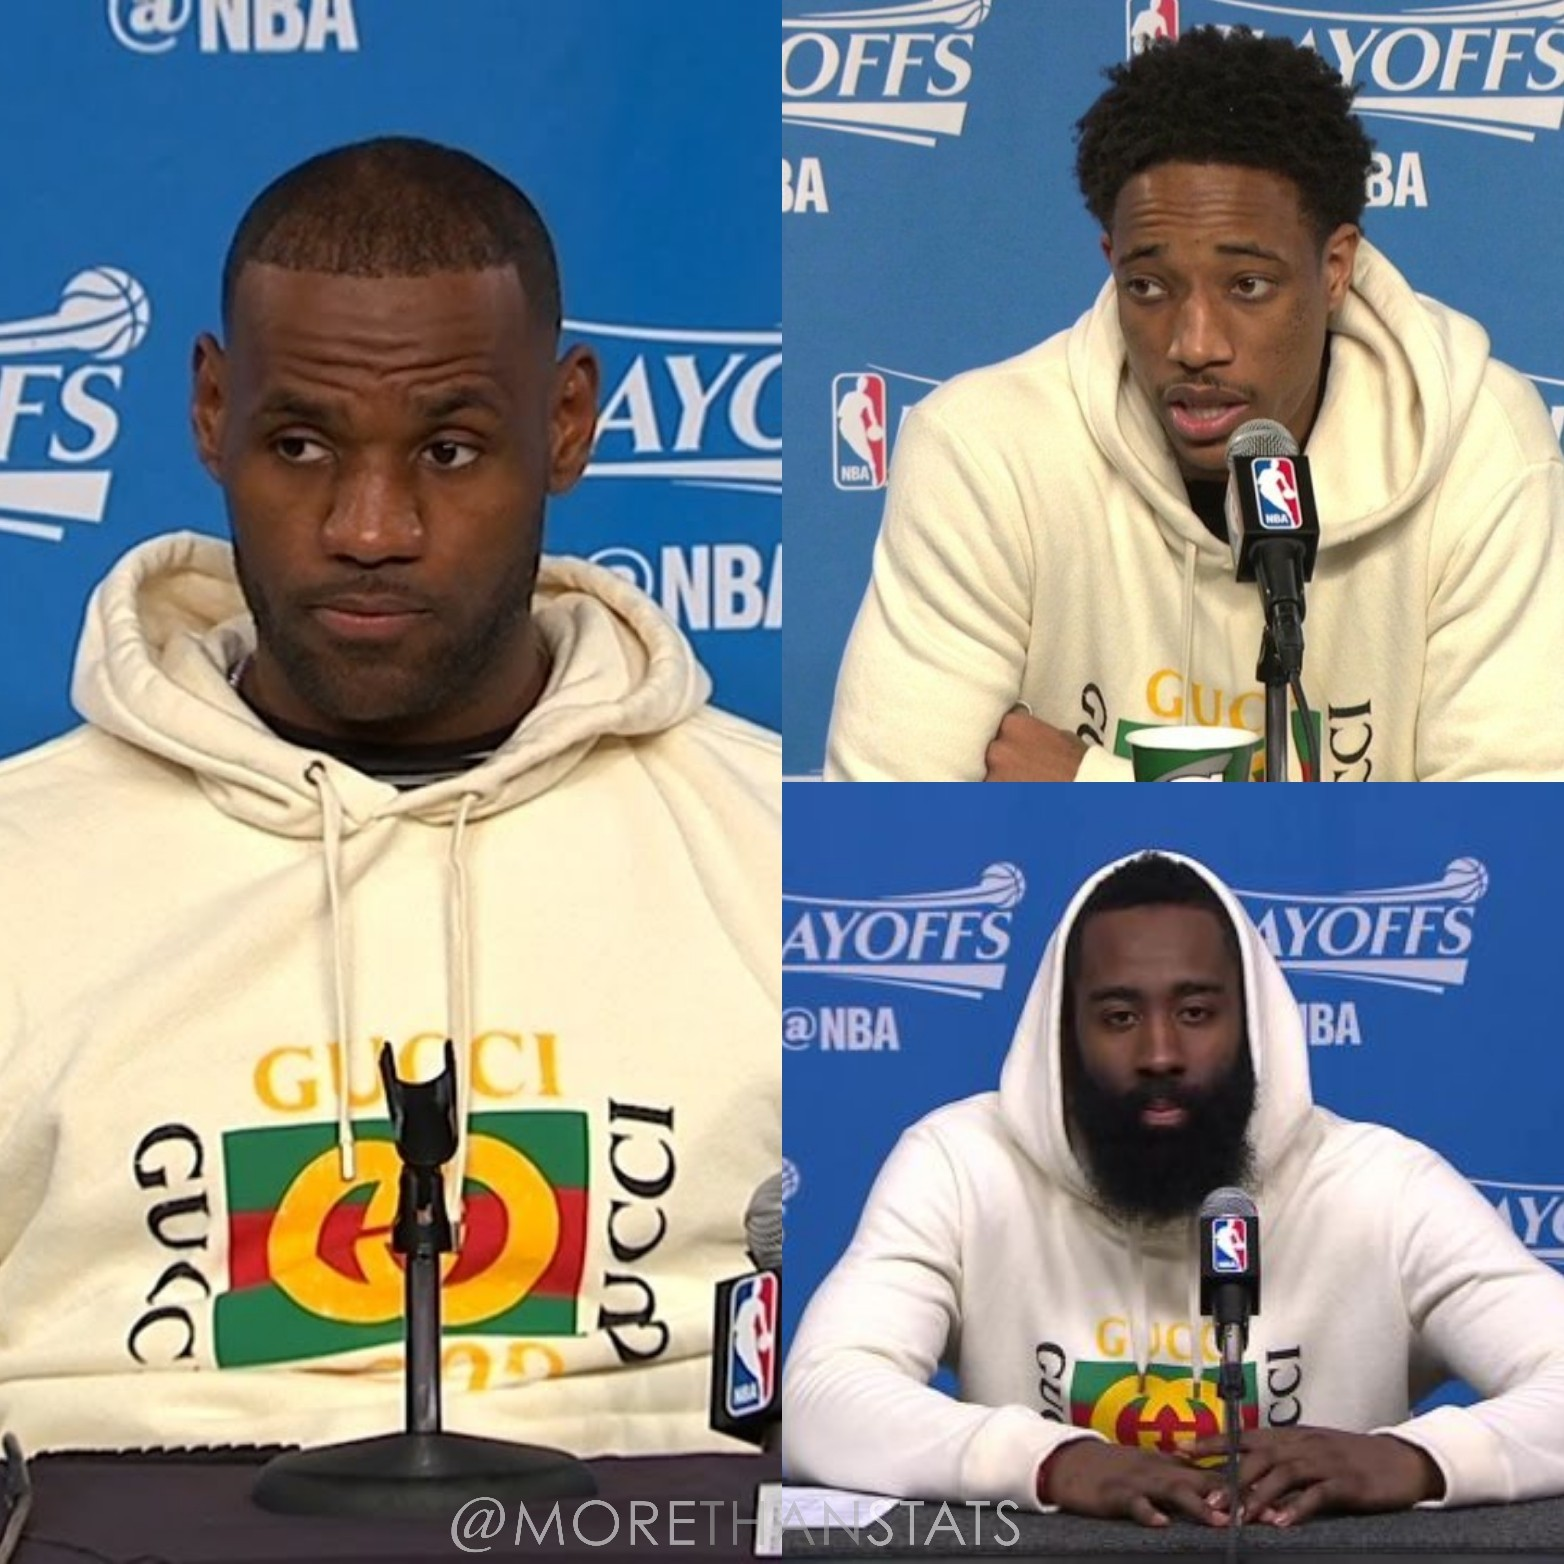 Lebron James, James Harden, Demar Derozan's NBA Playoffs Gucci logo Hoodie